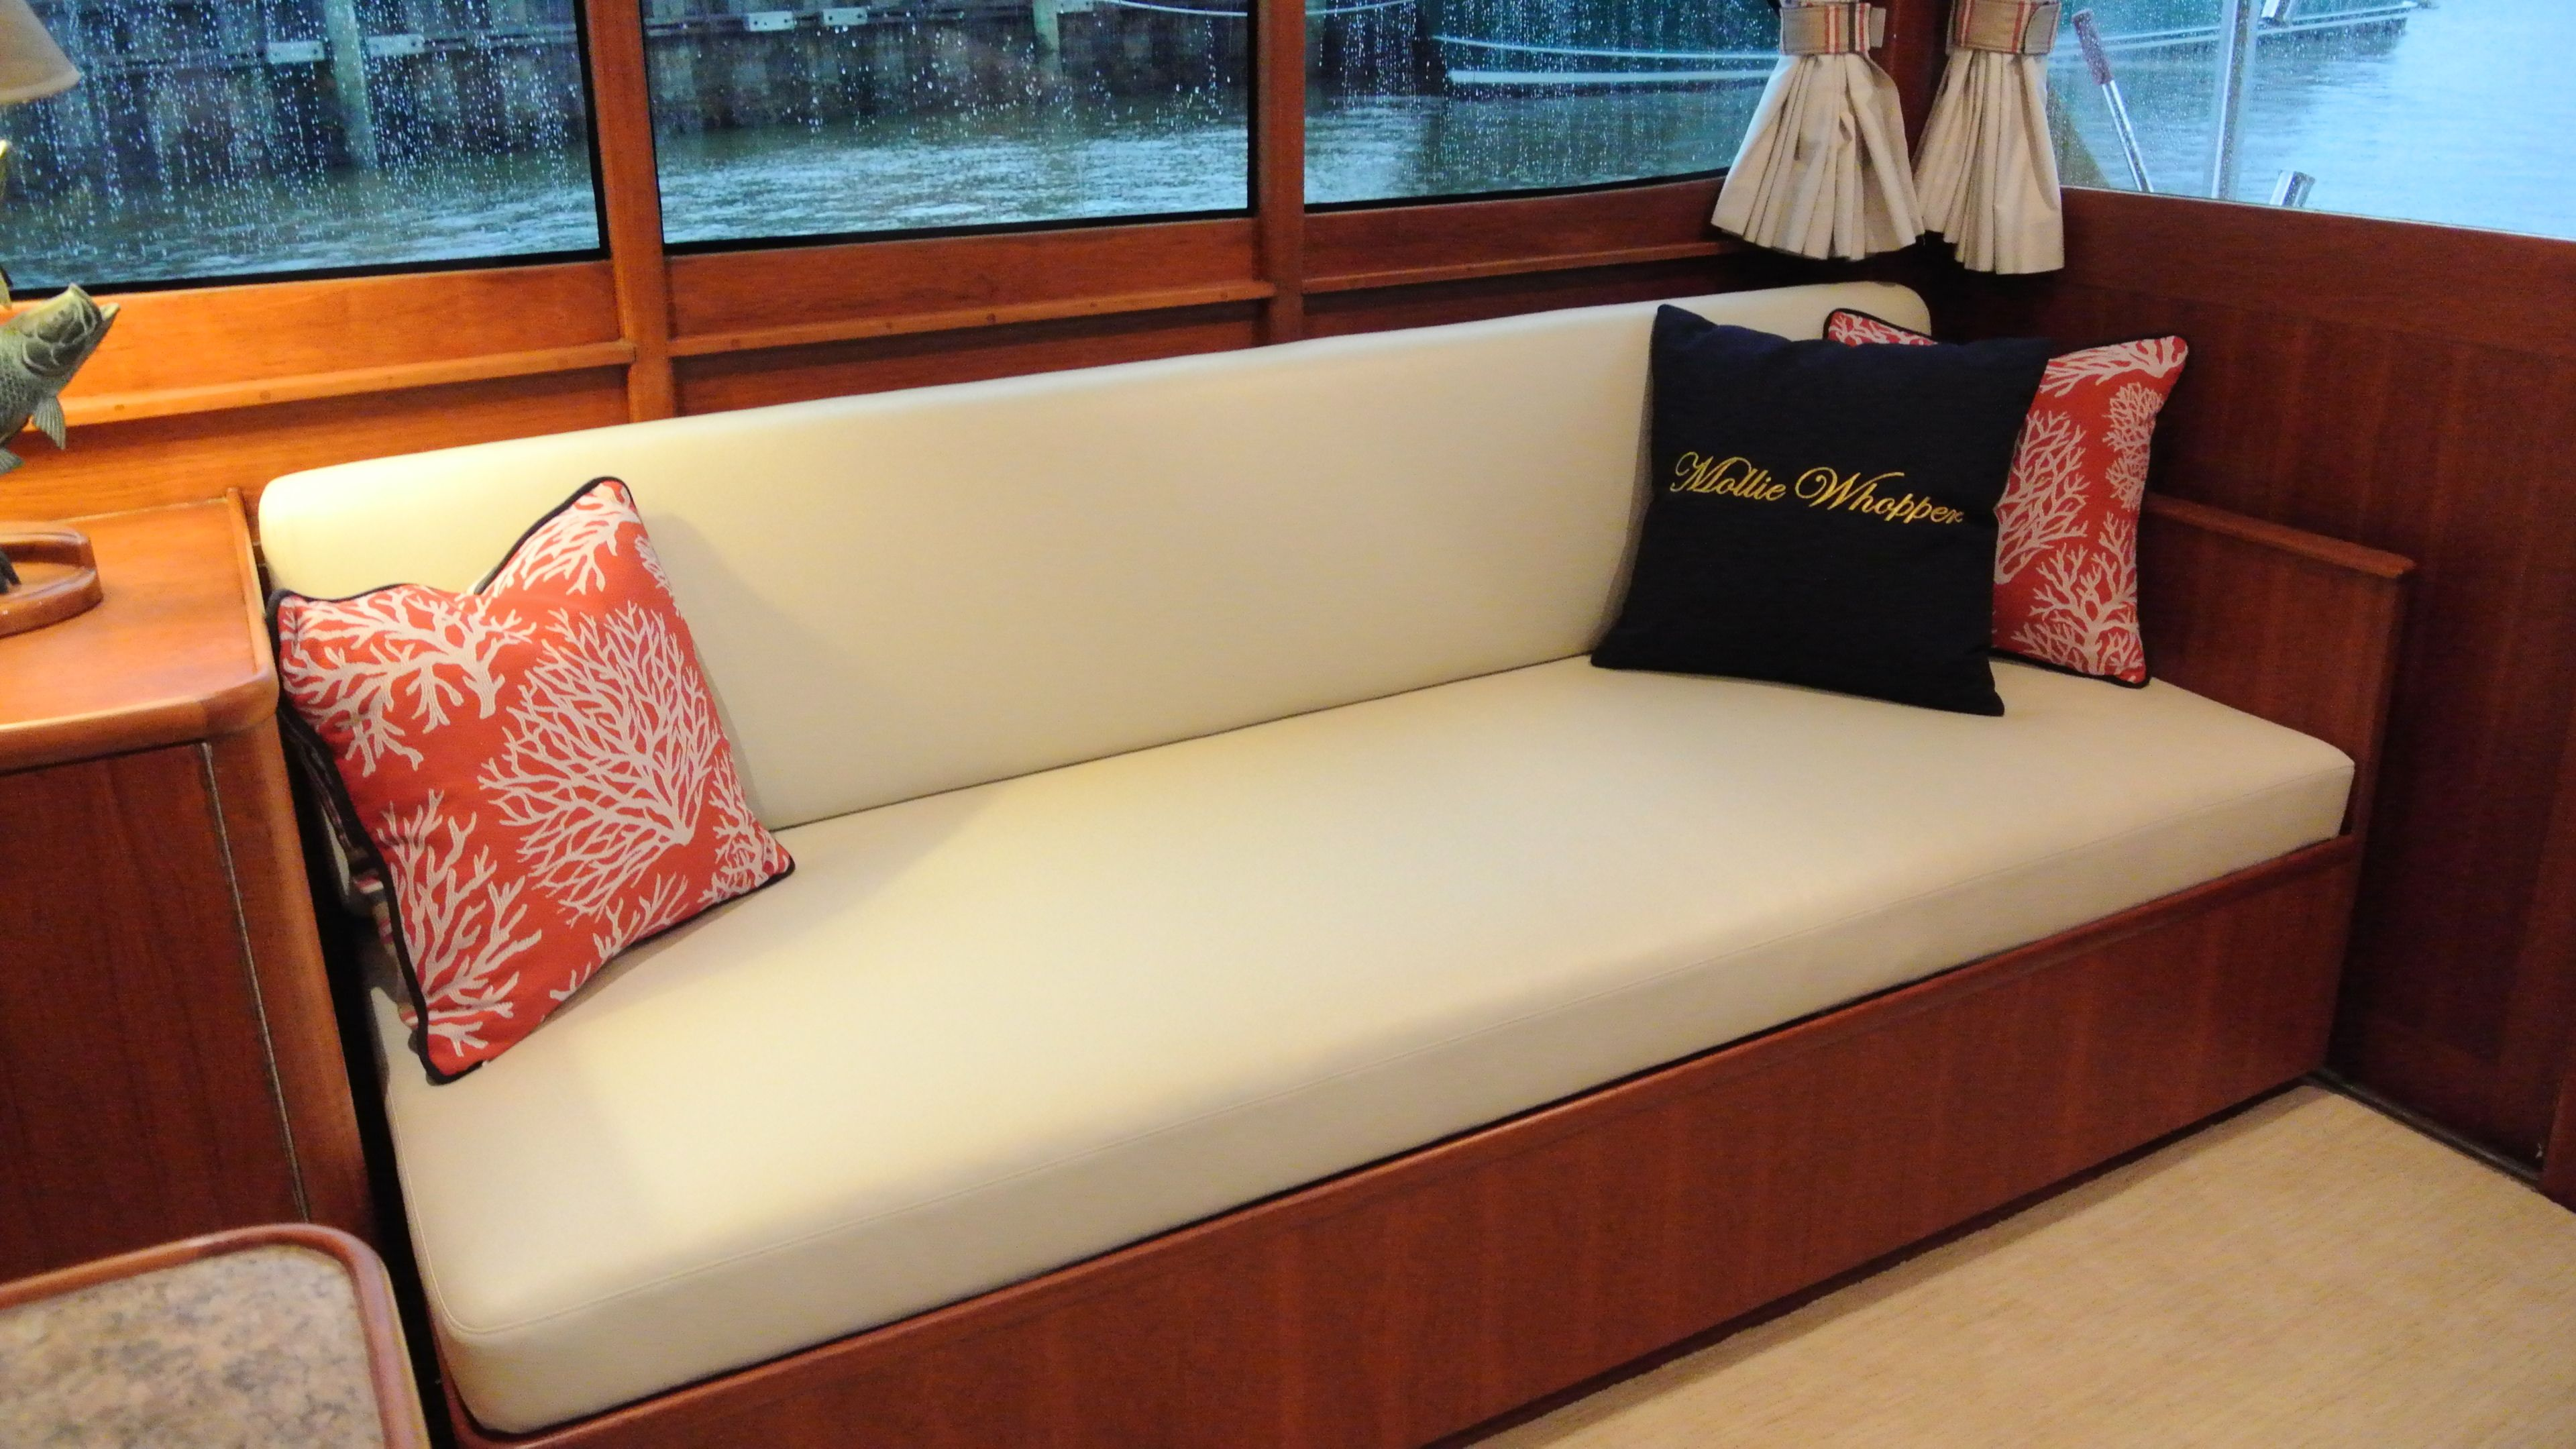 Molly Whopper Settee Fabricated With Ultraleather And Accent Pillows Made  With Sunbrella Fabrics, Crystal Coast